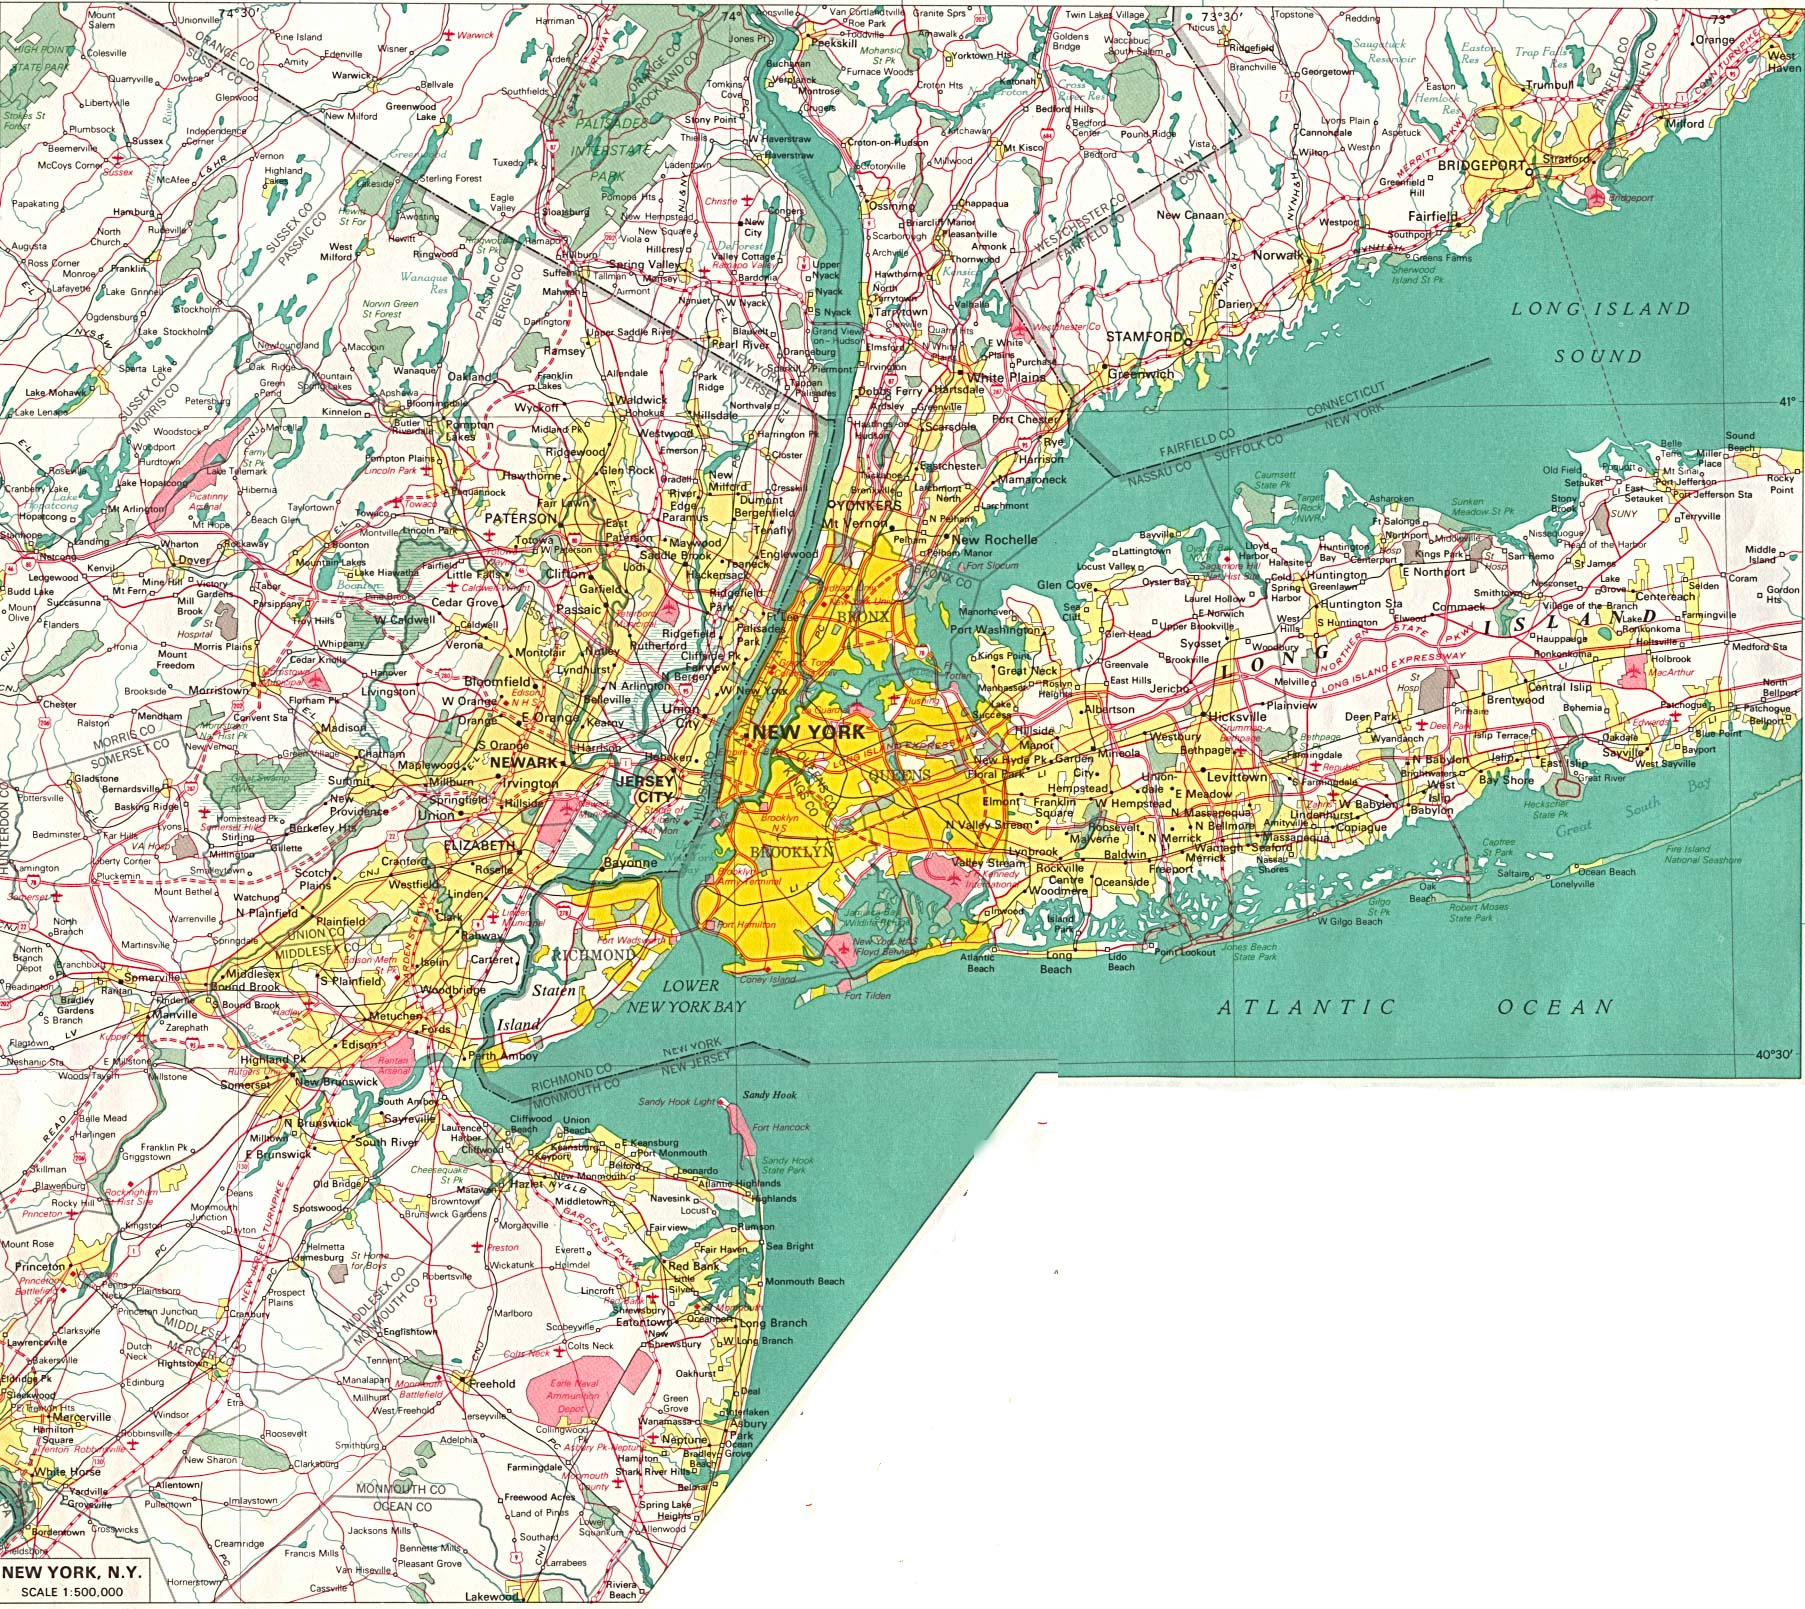 New York Cities Map New York Maps   Perry Castañeda Map Collection   UT Library Online New York Cities Map